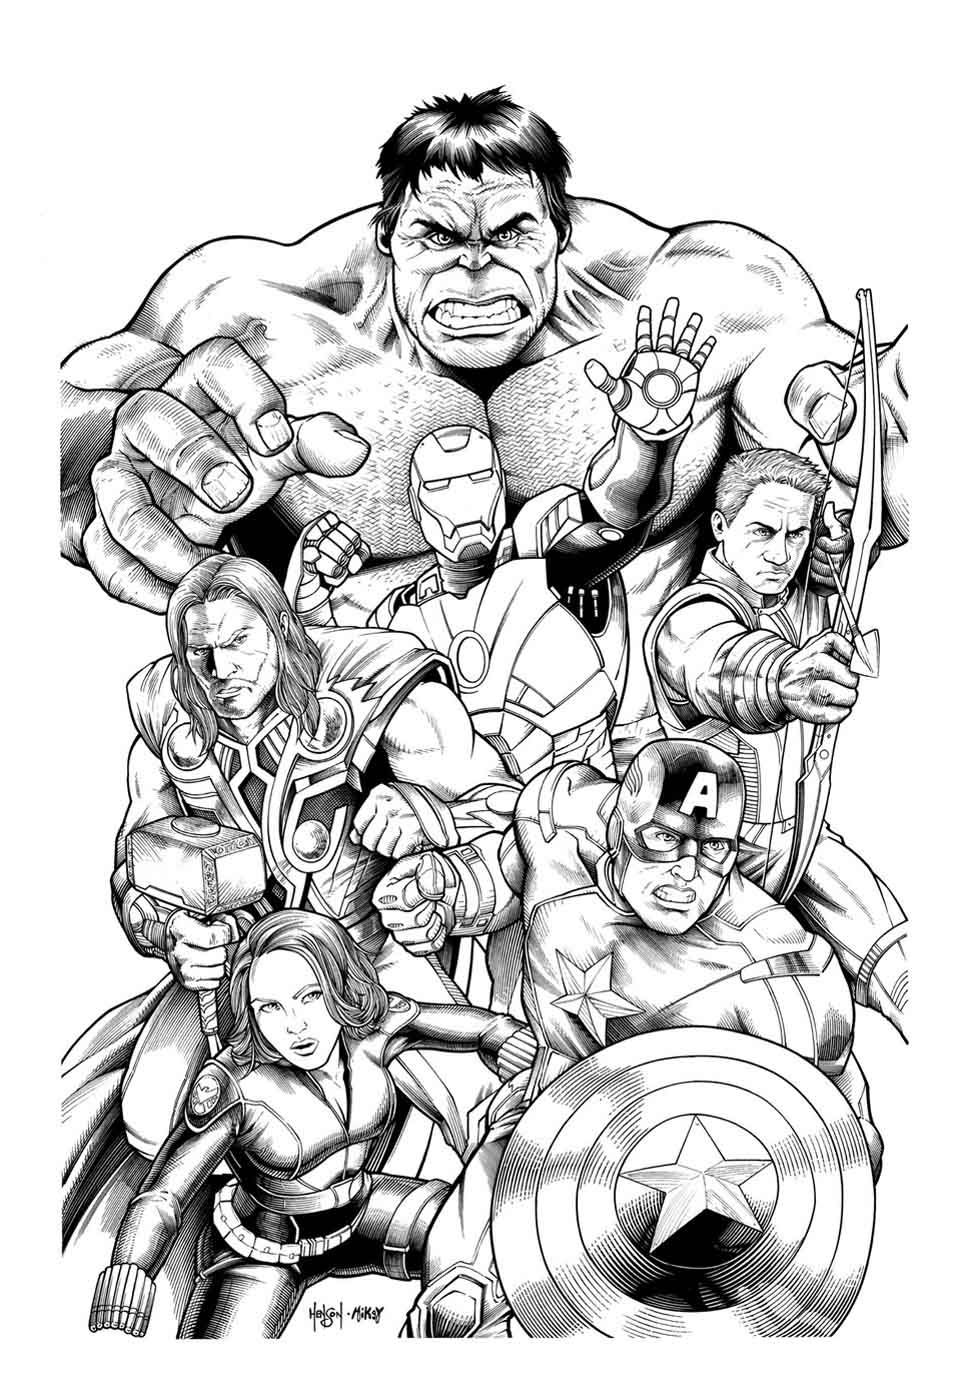 Free Coloring Page Adult Avengers Hulk Of The Difficult To Color With Iron Man Thor Captain America Black Widow